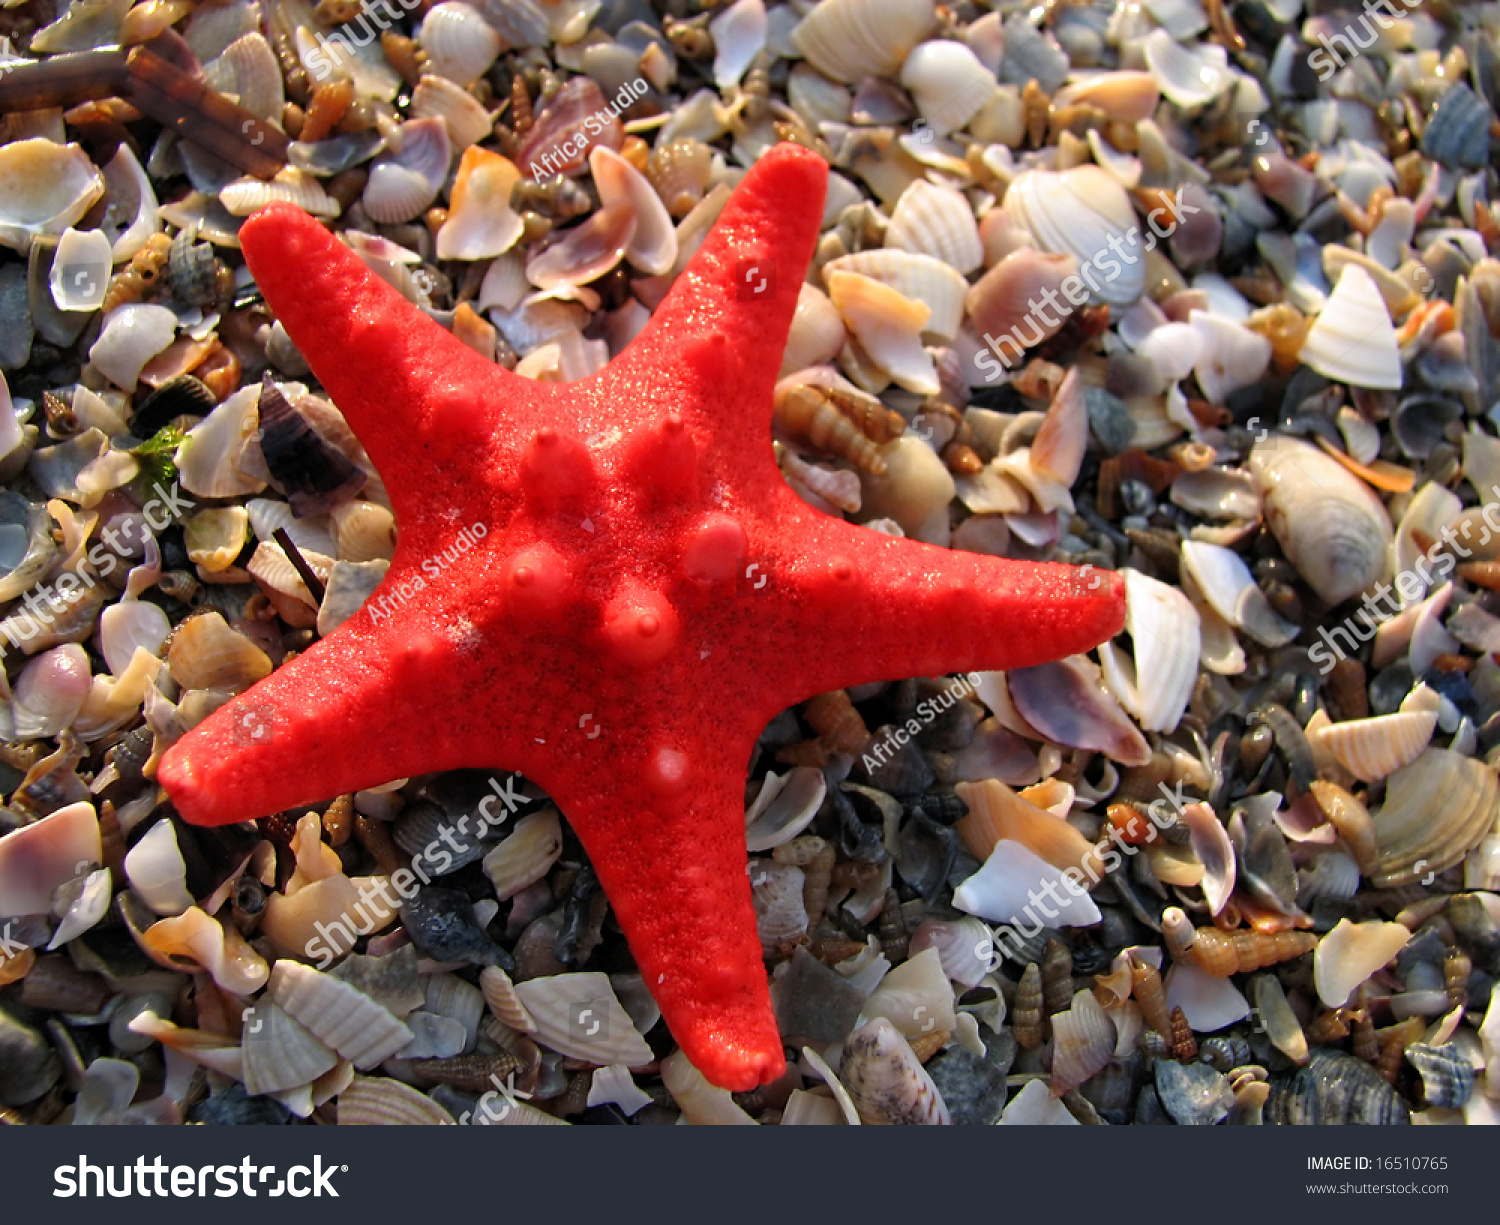 how to find starfish on the beach